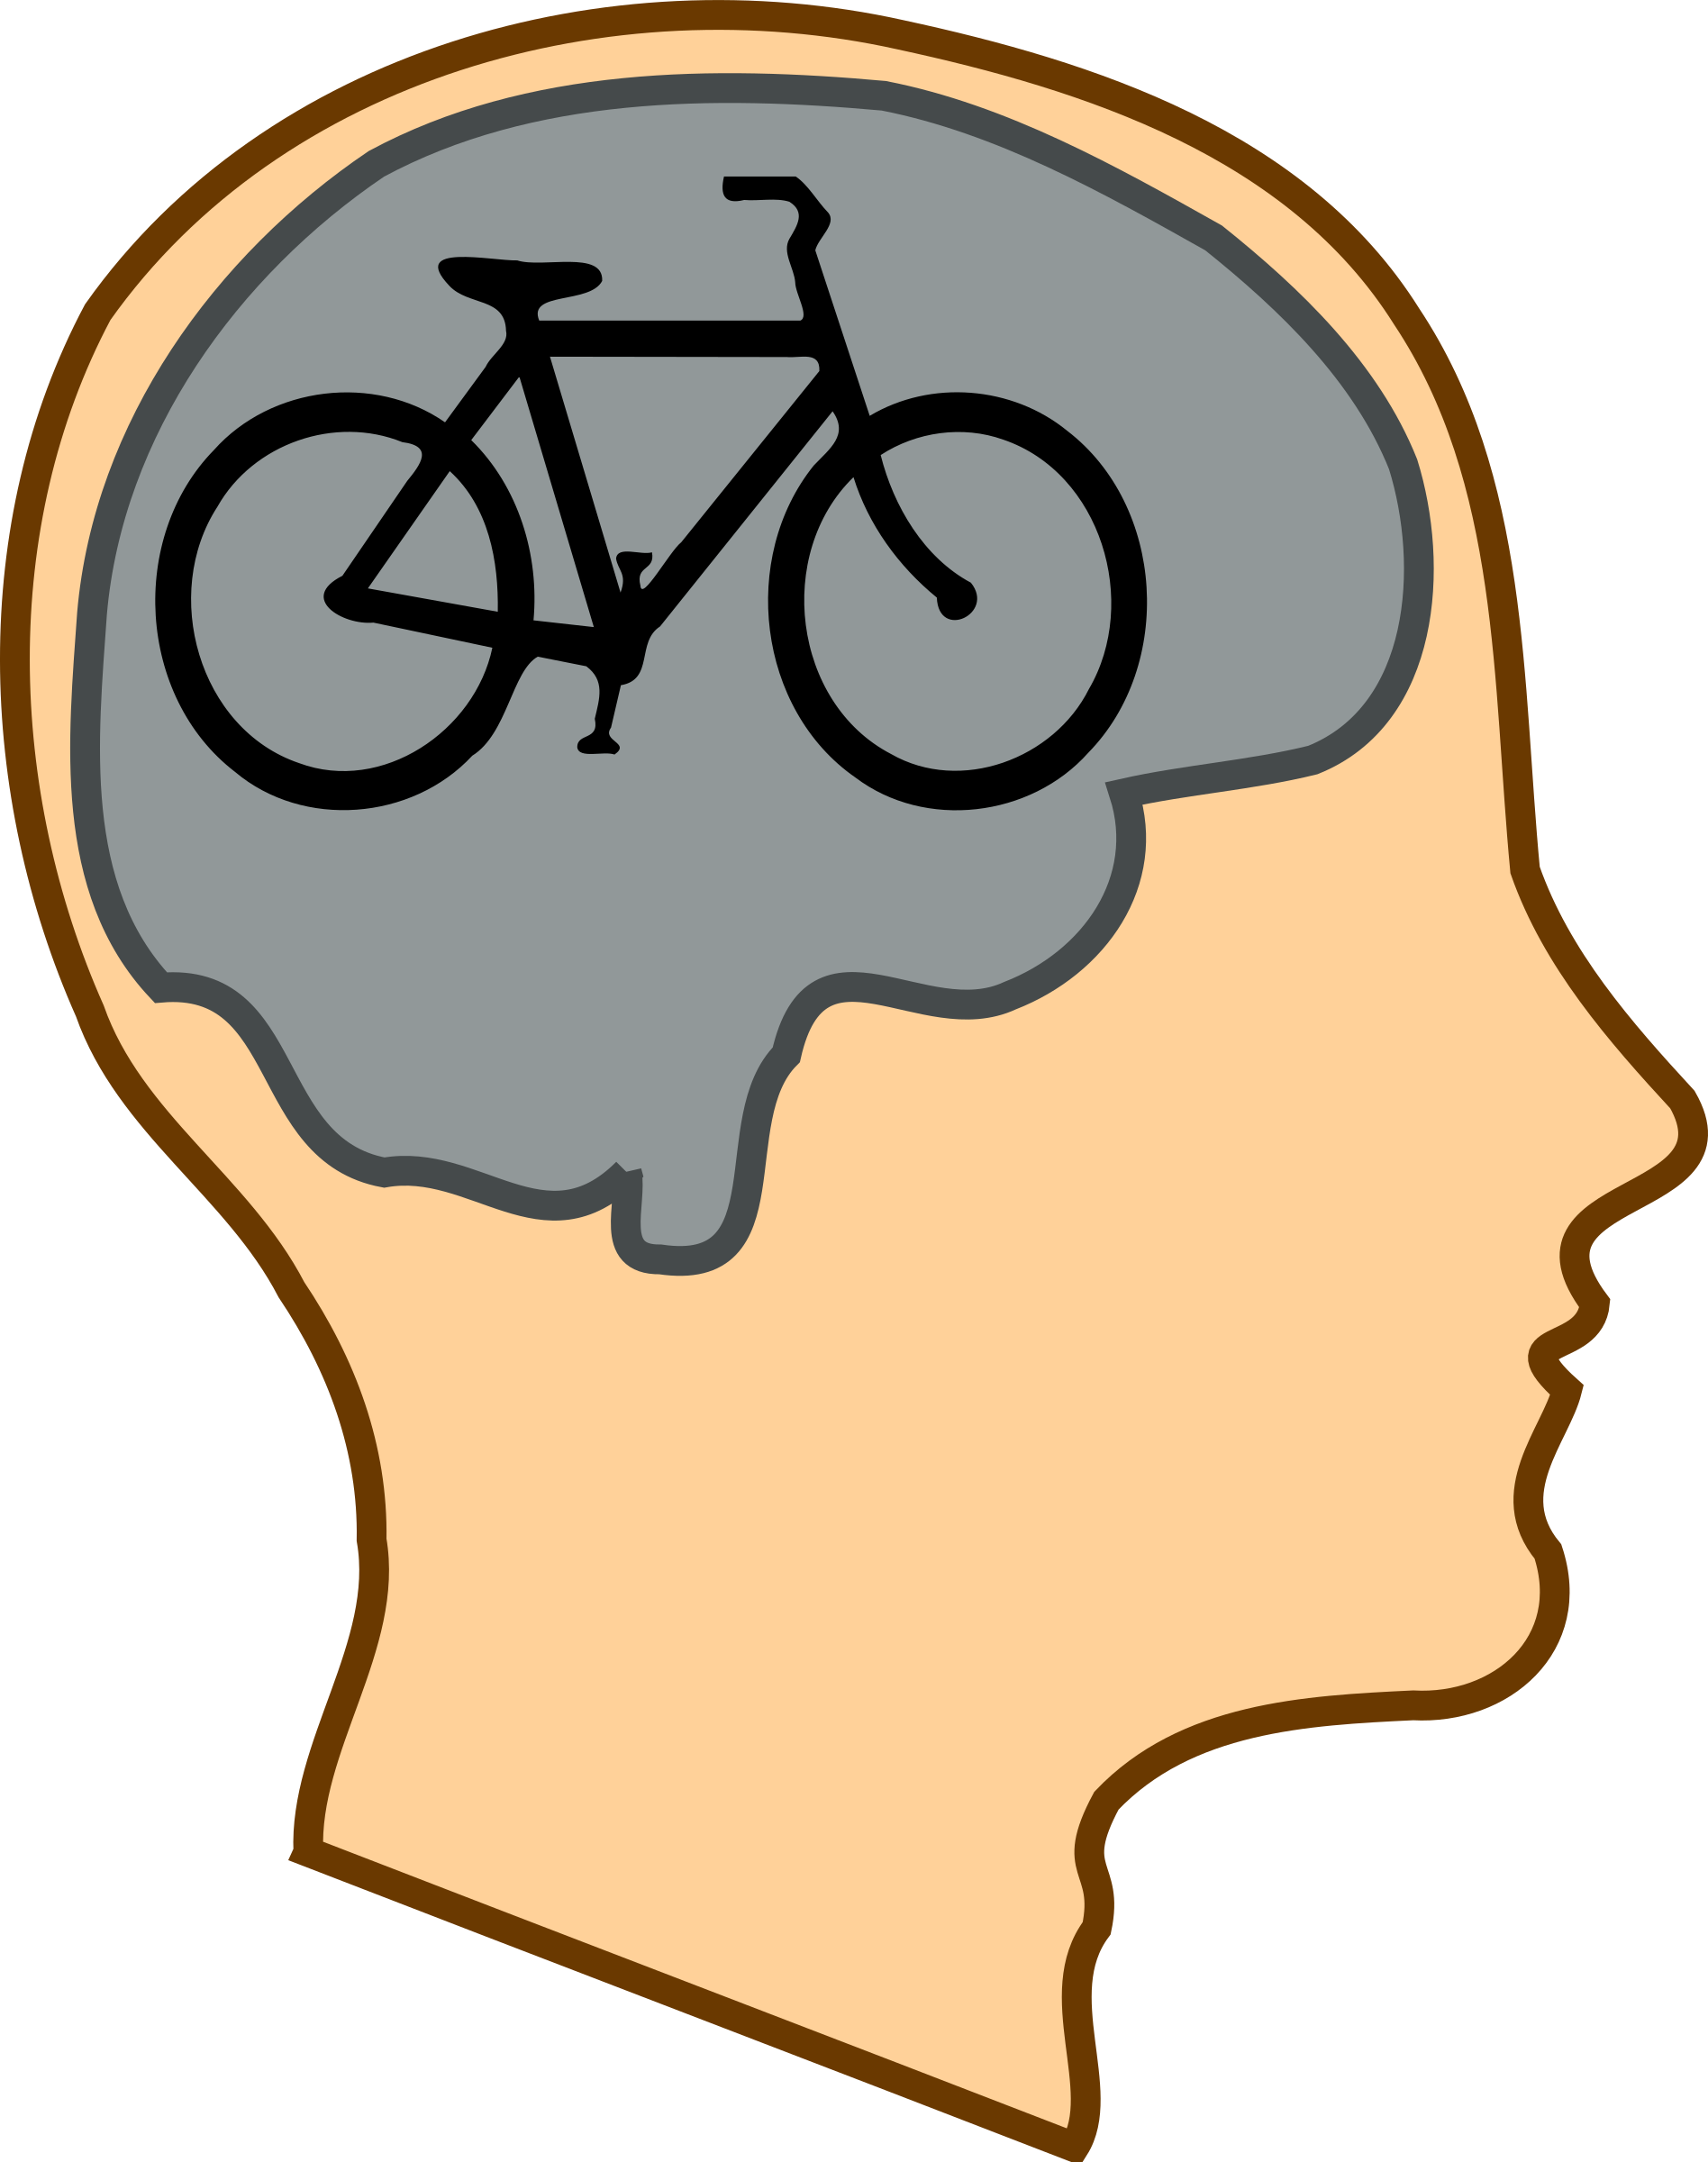 Memories clipart losing my mind. Bicycle for our minds